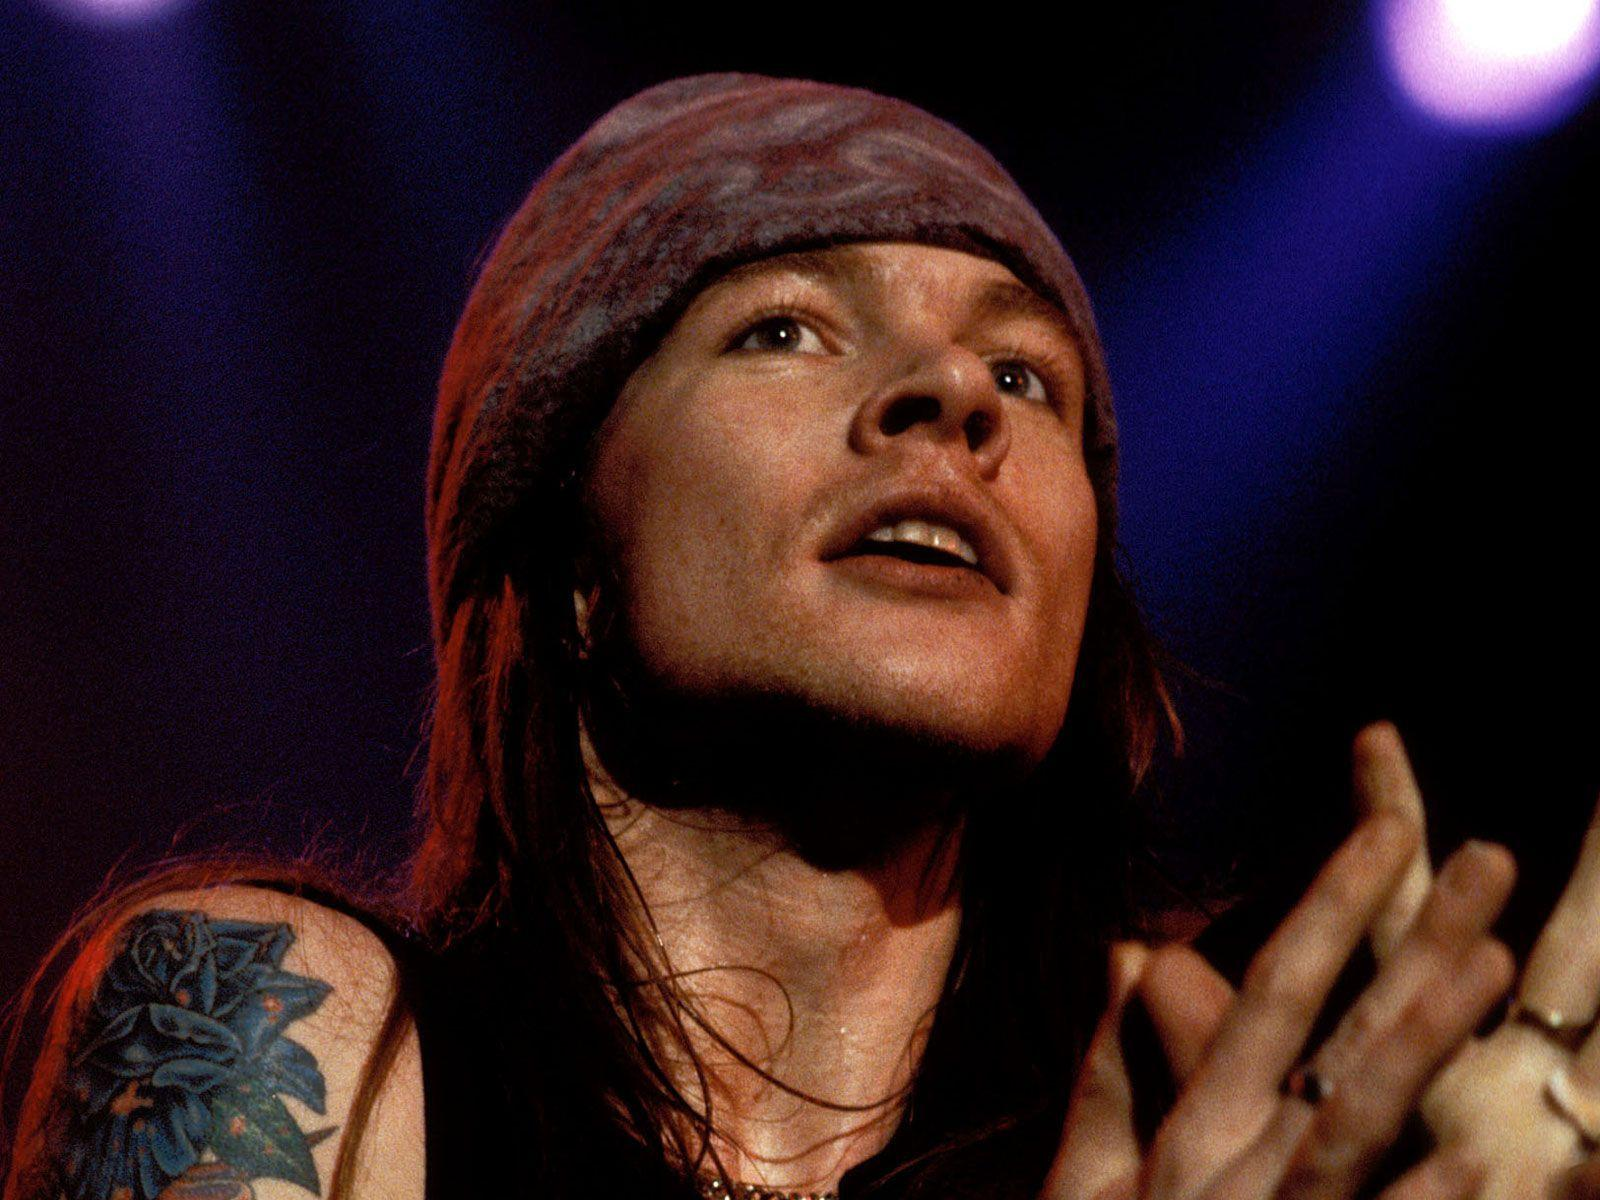 axl rose wallpaper - photo #7